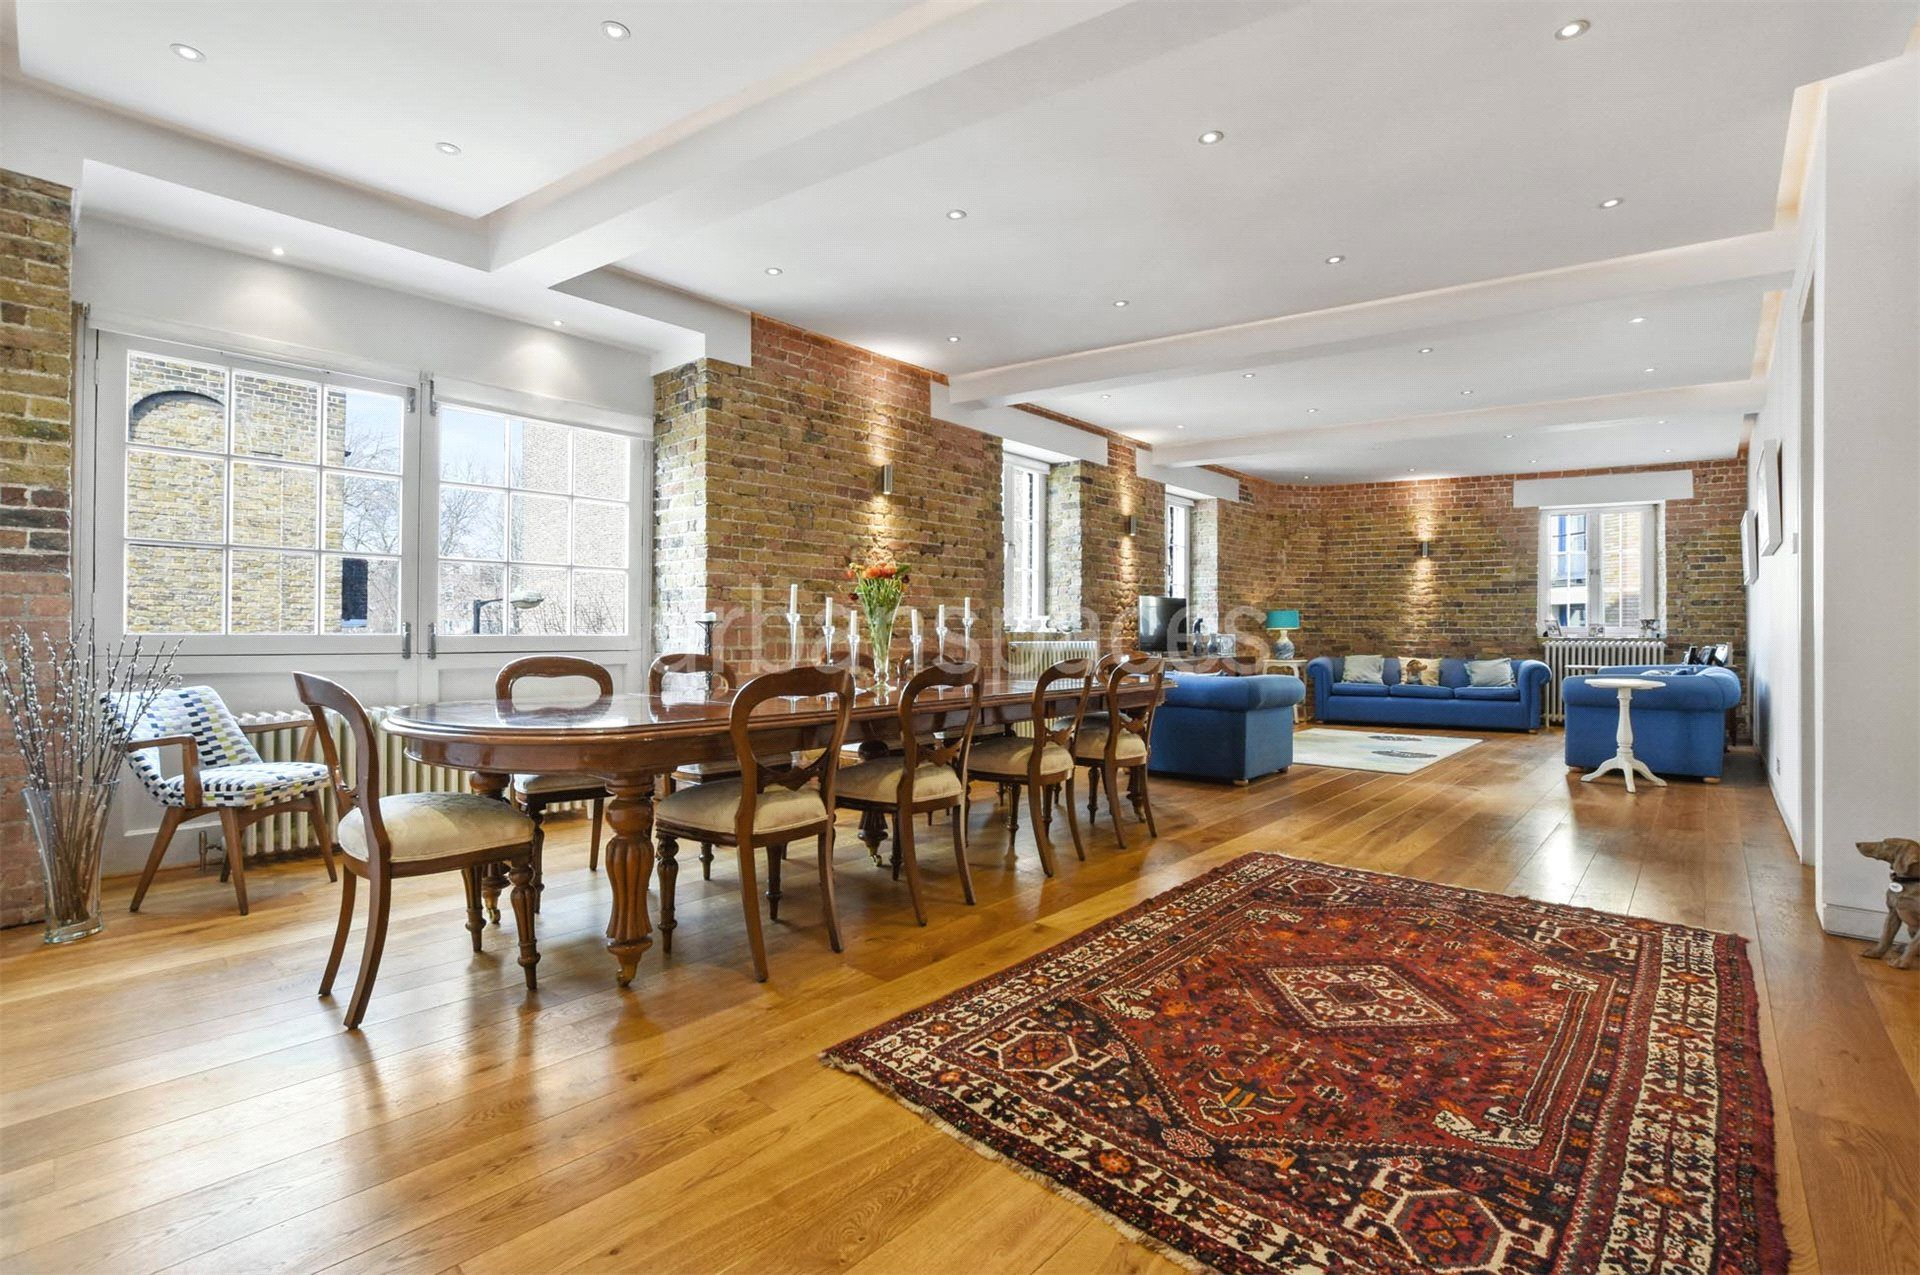 3 bedroom for sale in Gullivers Wharf, 105 Wapping Lane